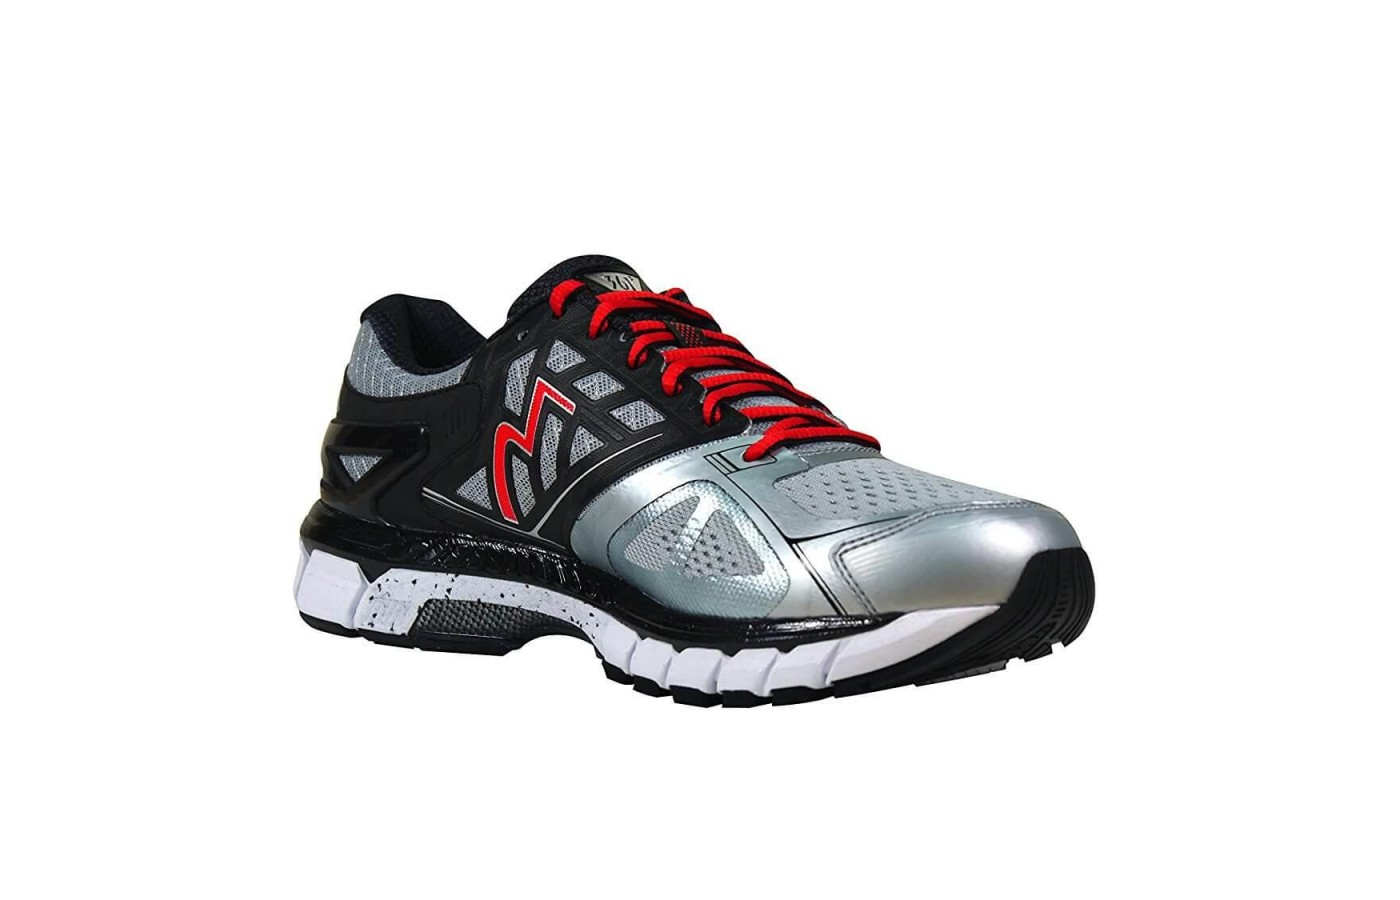 The 361 Strata 2 has an engineered mesh upper